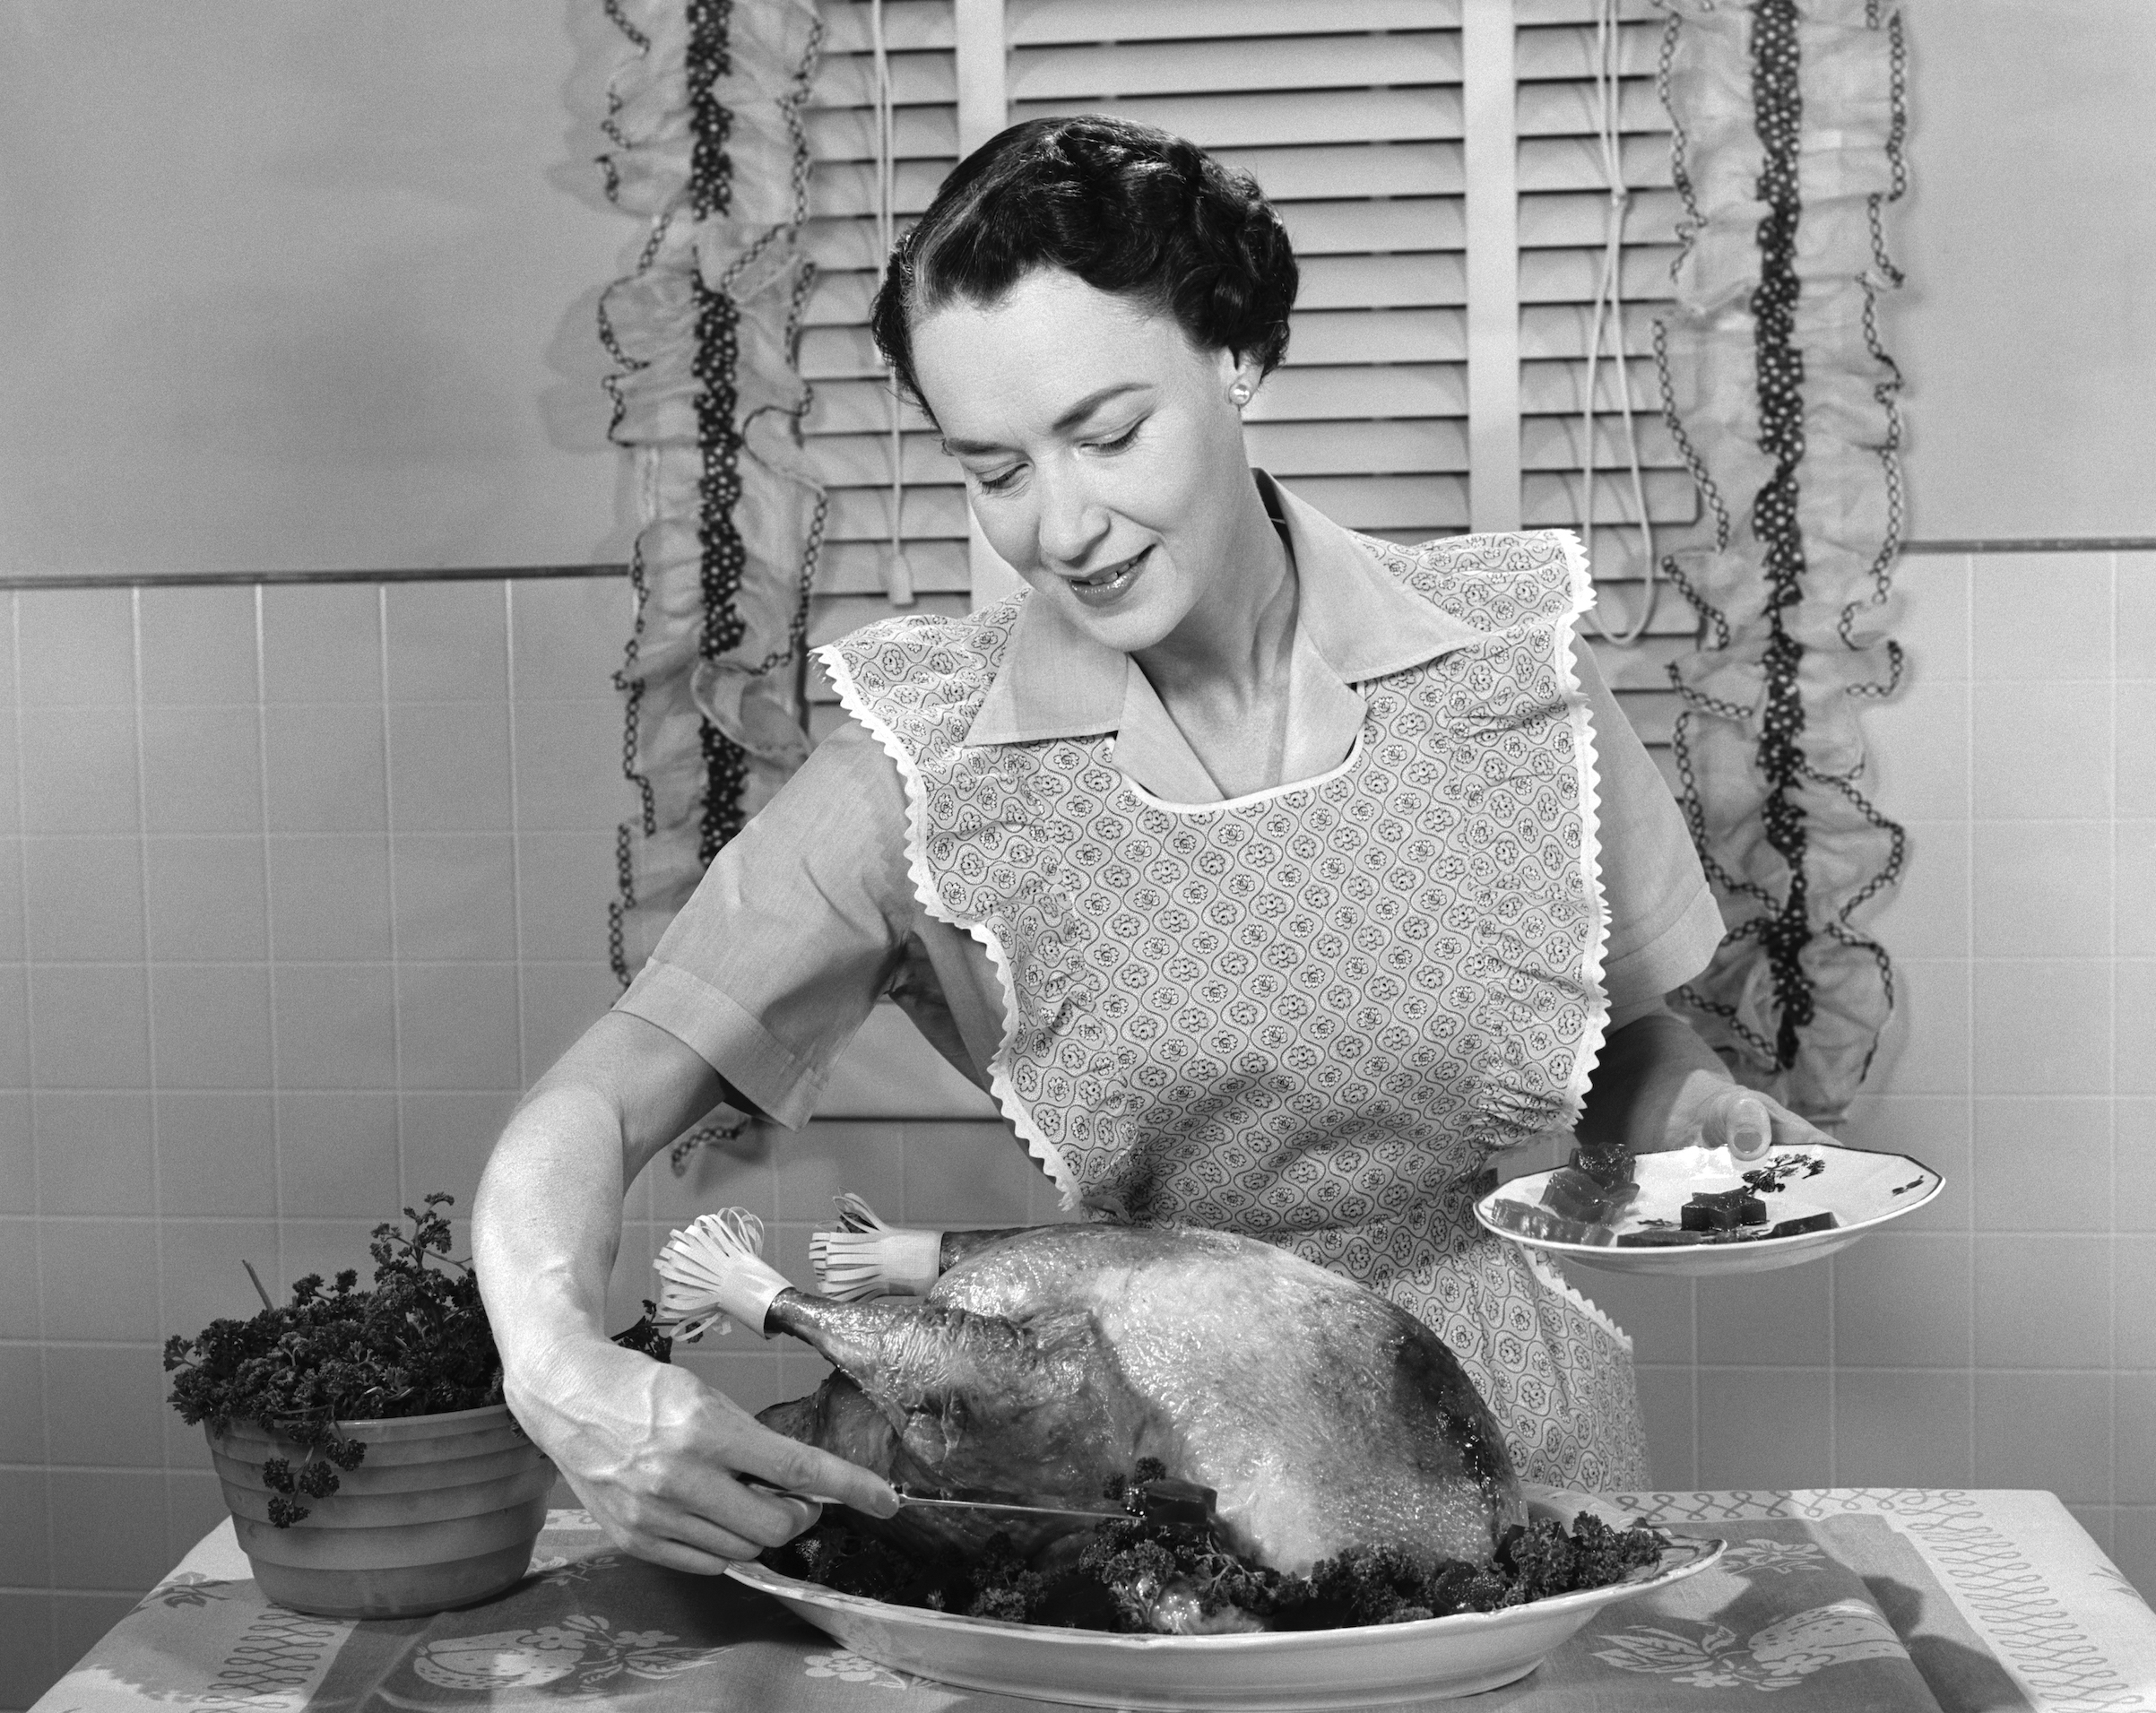 A woman dished cranberry sauce around a turkey in the 1950s